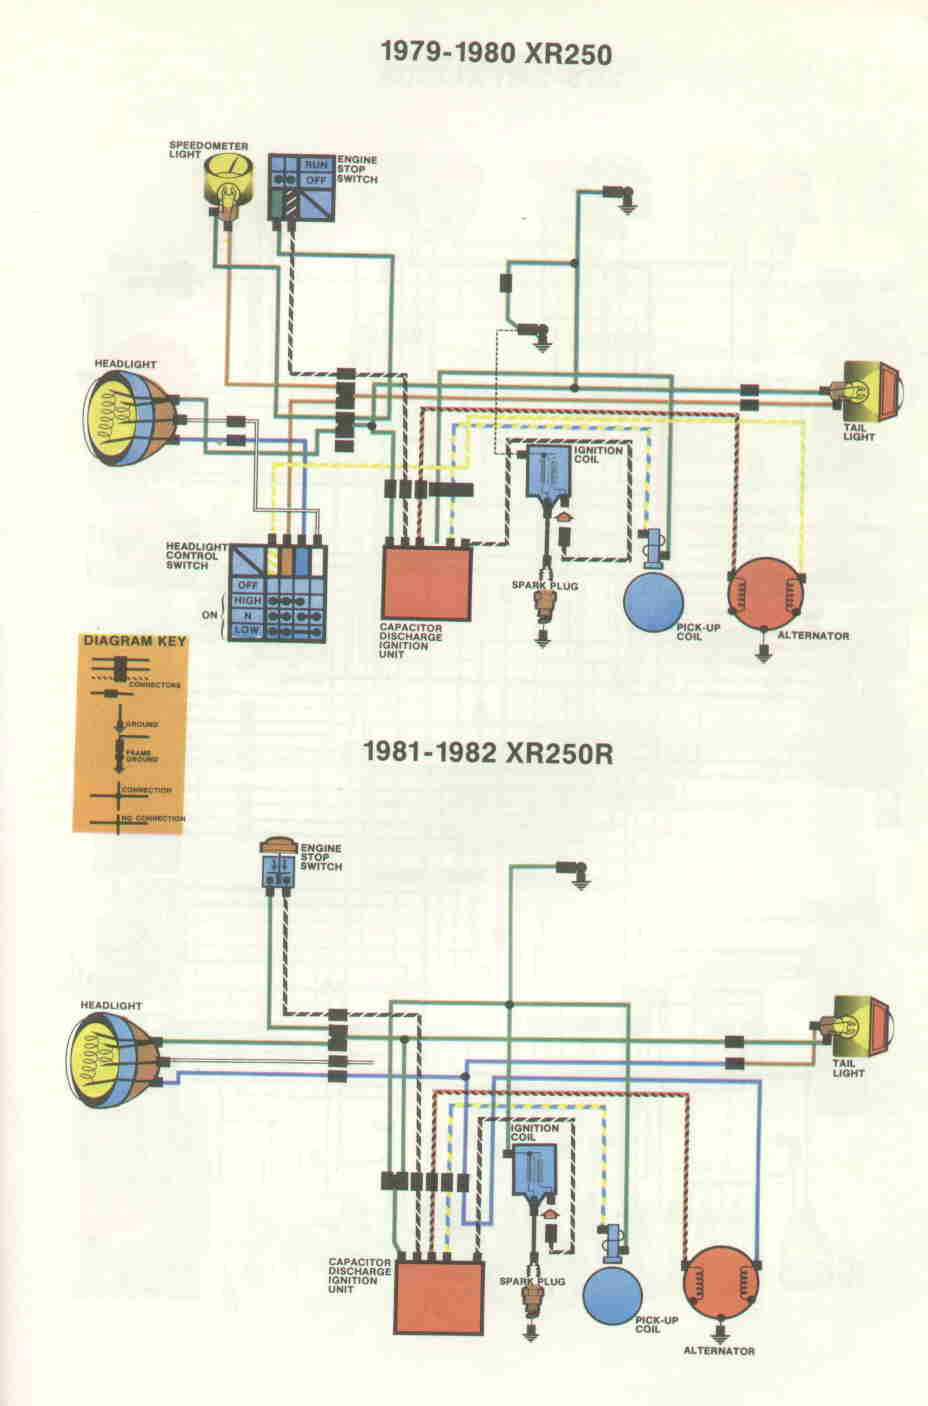 Remarkable Wiring Diagram Besides Honda Xl600R Wiring Diagram On Xr250R 1984 Wiring Cloud Brecesaoduqqnet